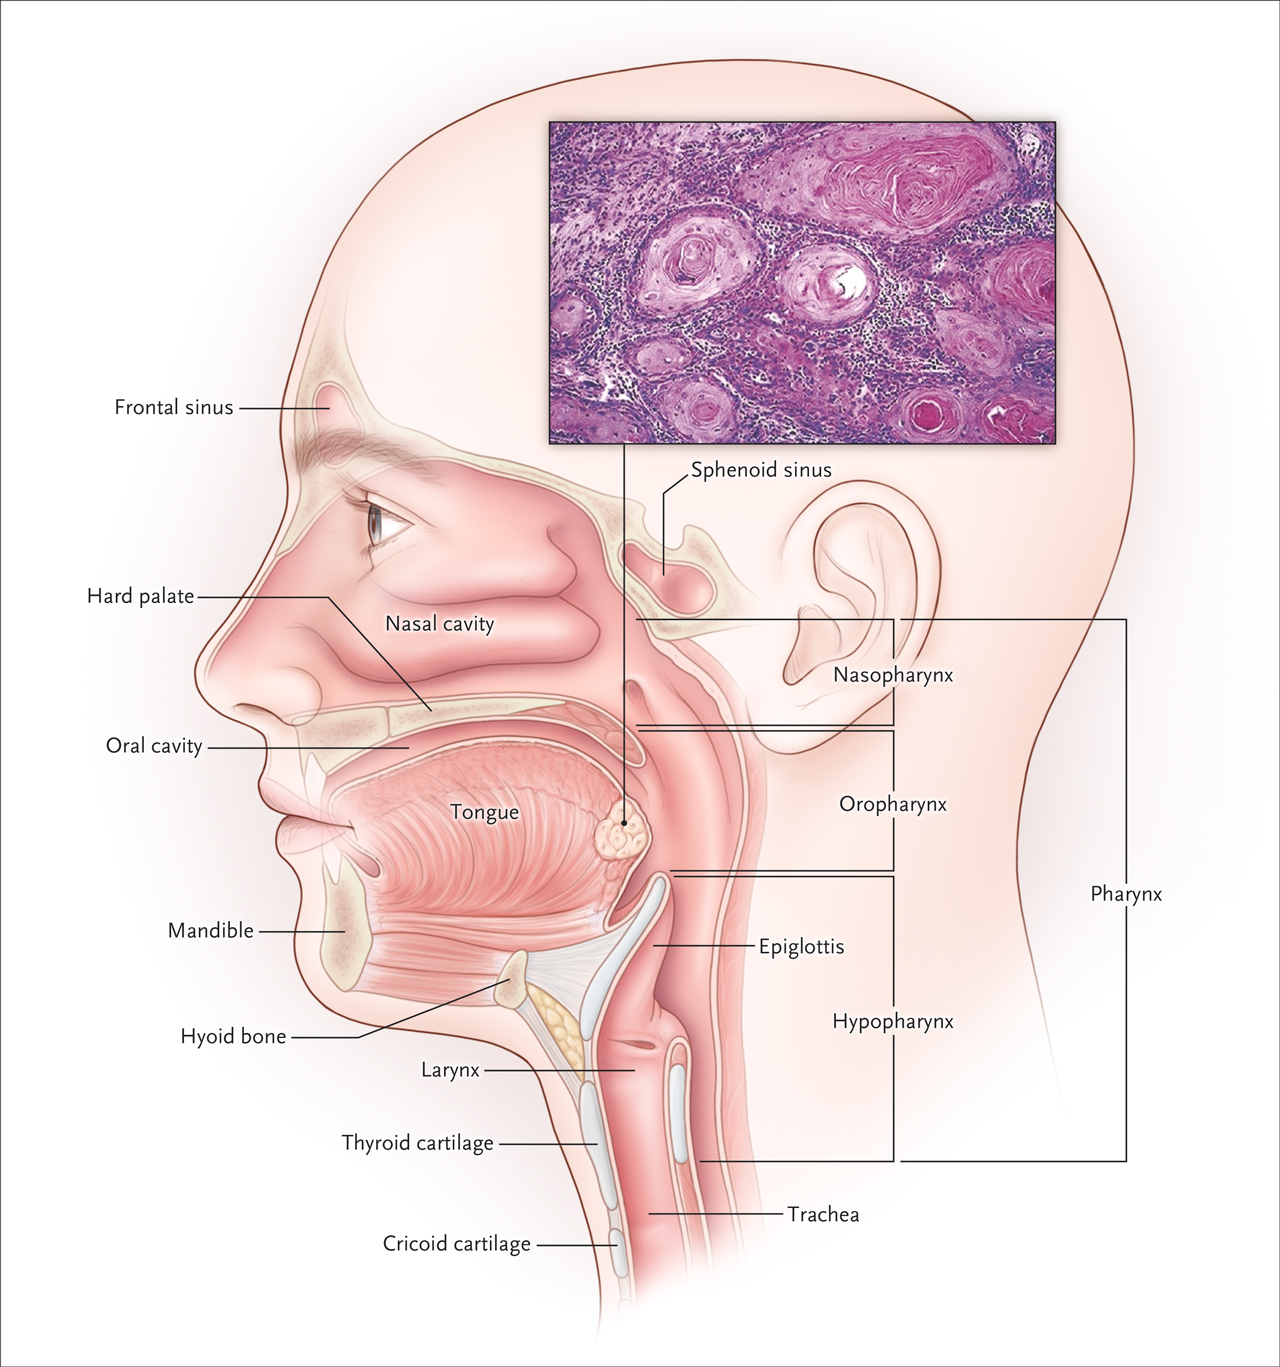 Hpv testing for head and neck cancer. Human papilloma virus kit